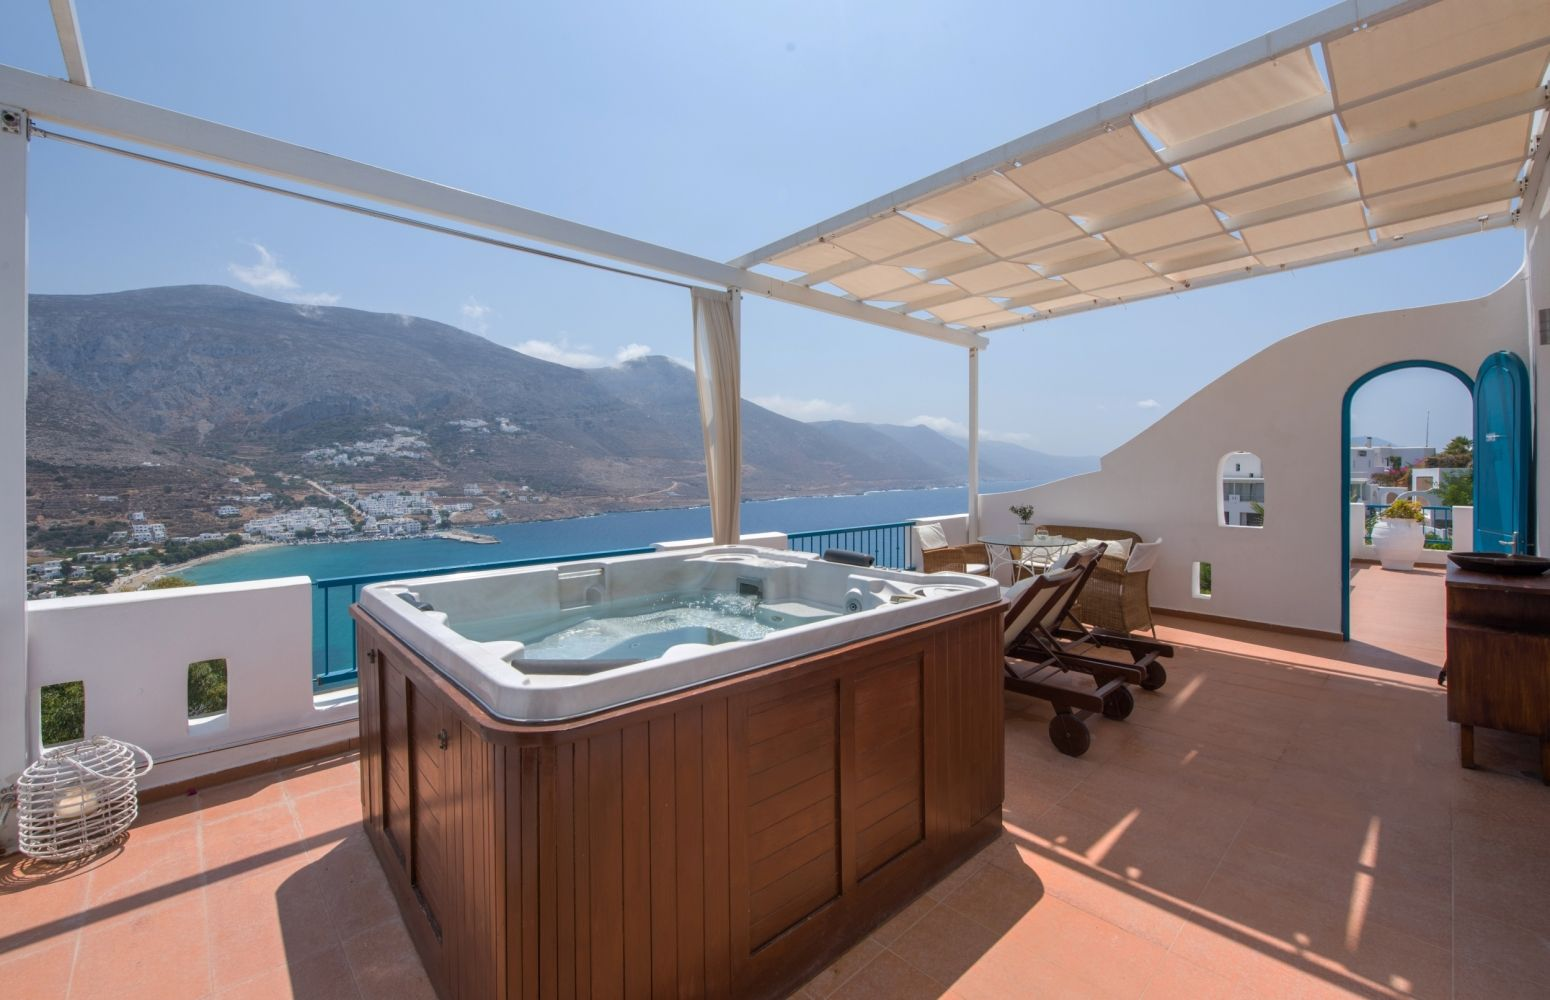 The Presidential Suite Indoor Jacuzzi Hotel Spa Luxury Hotel